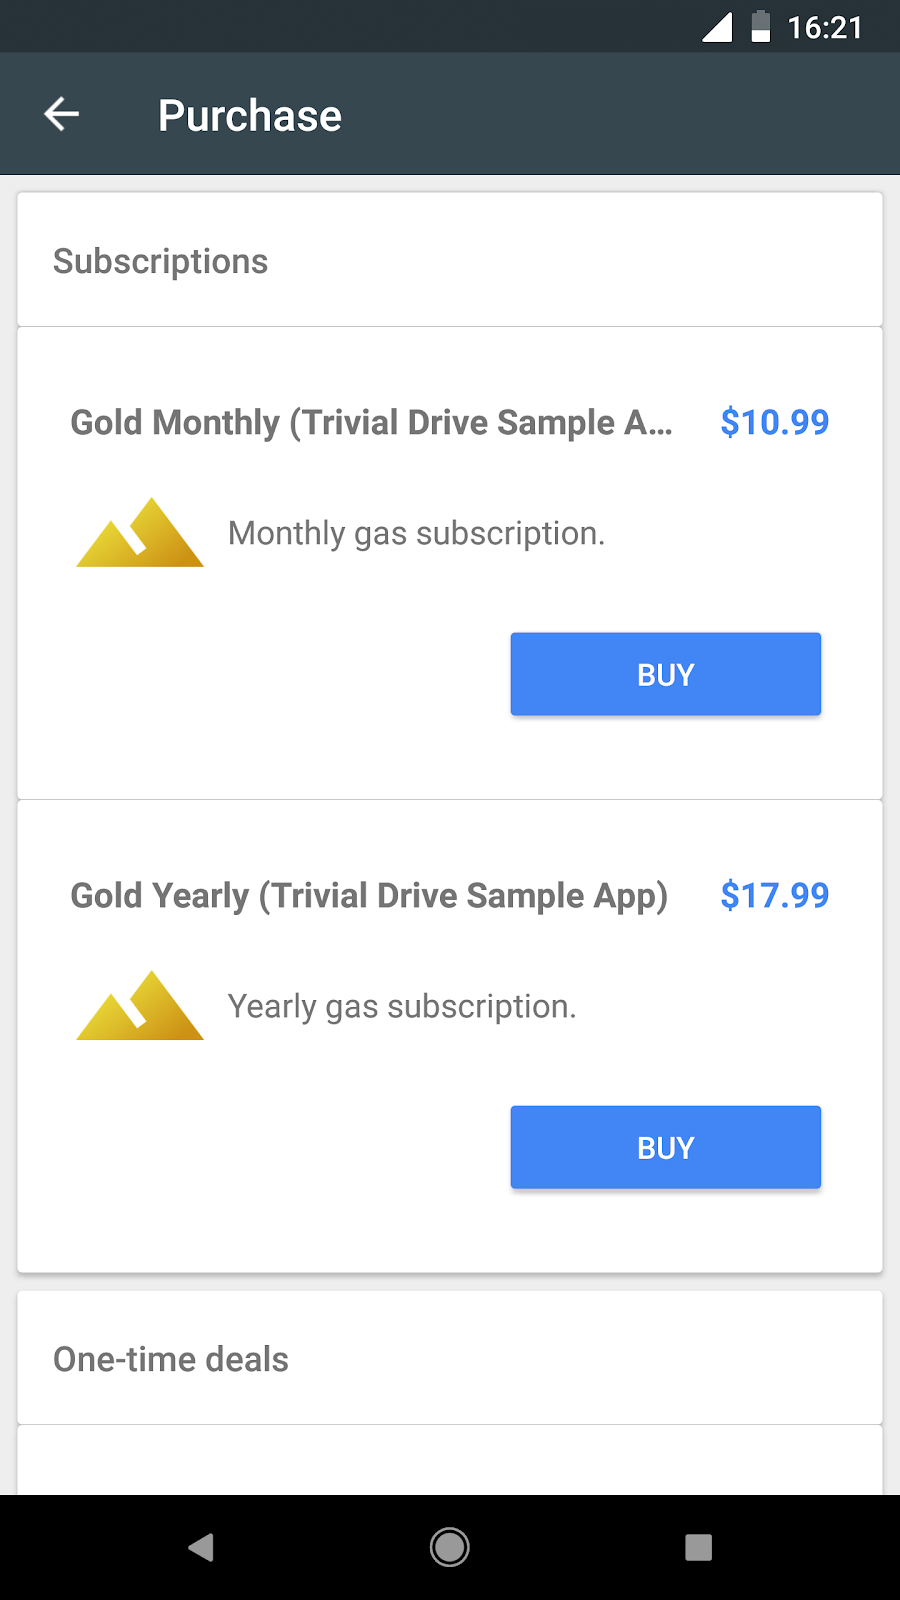 this app contains two subscription tiers